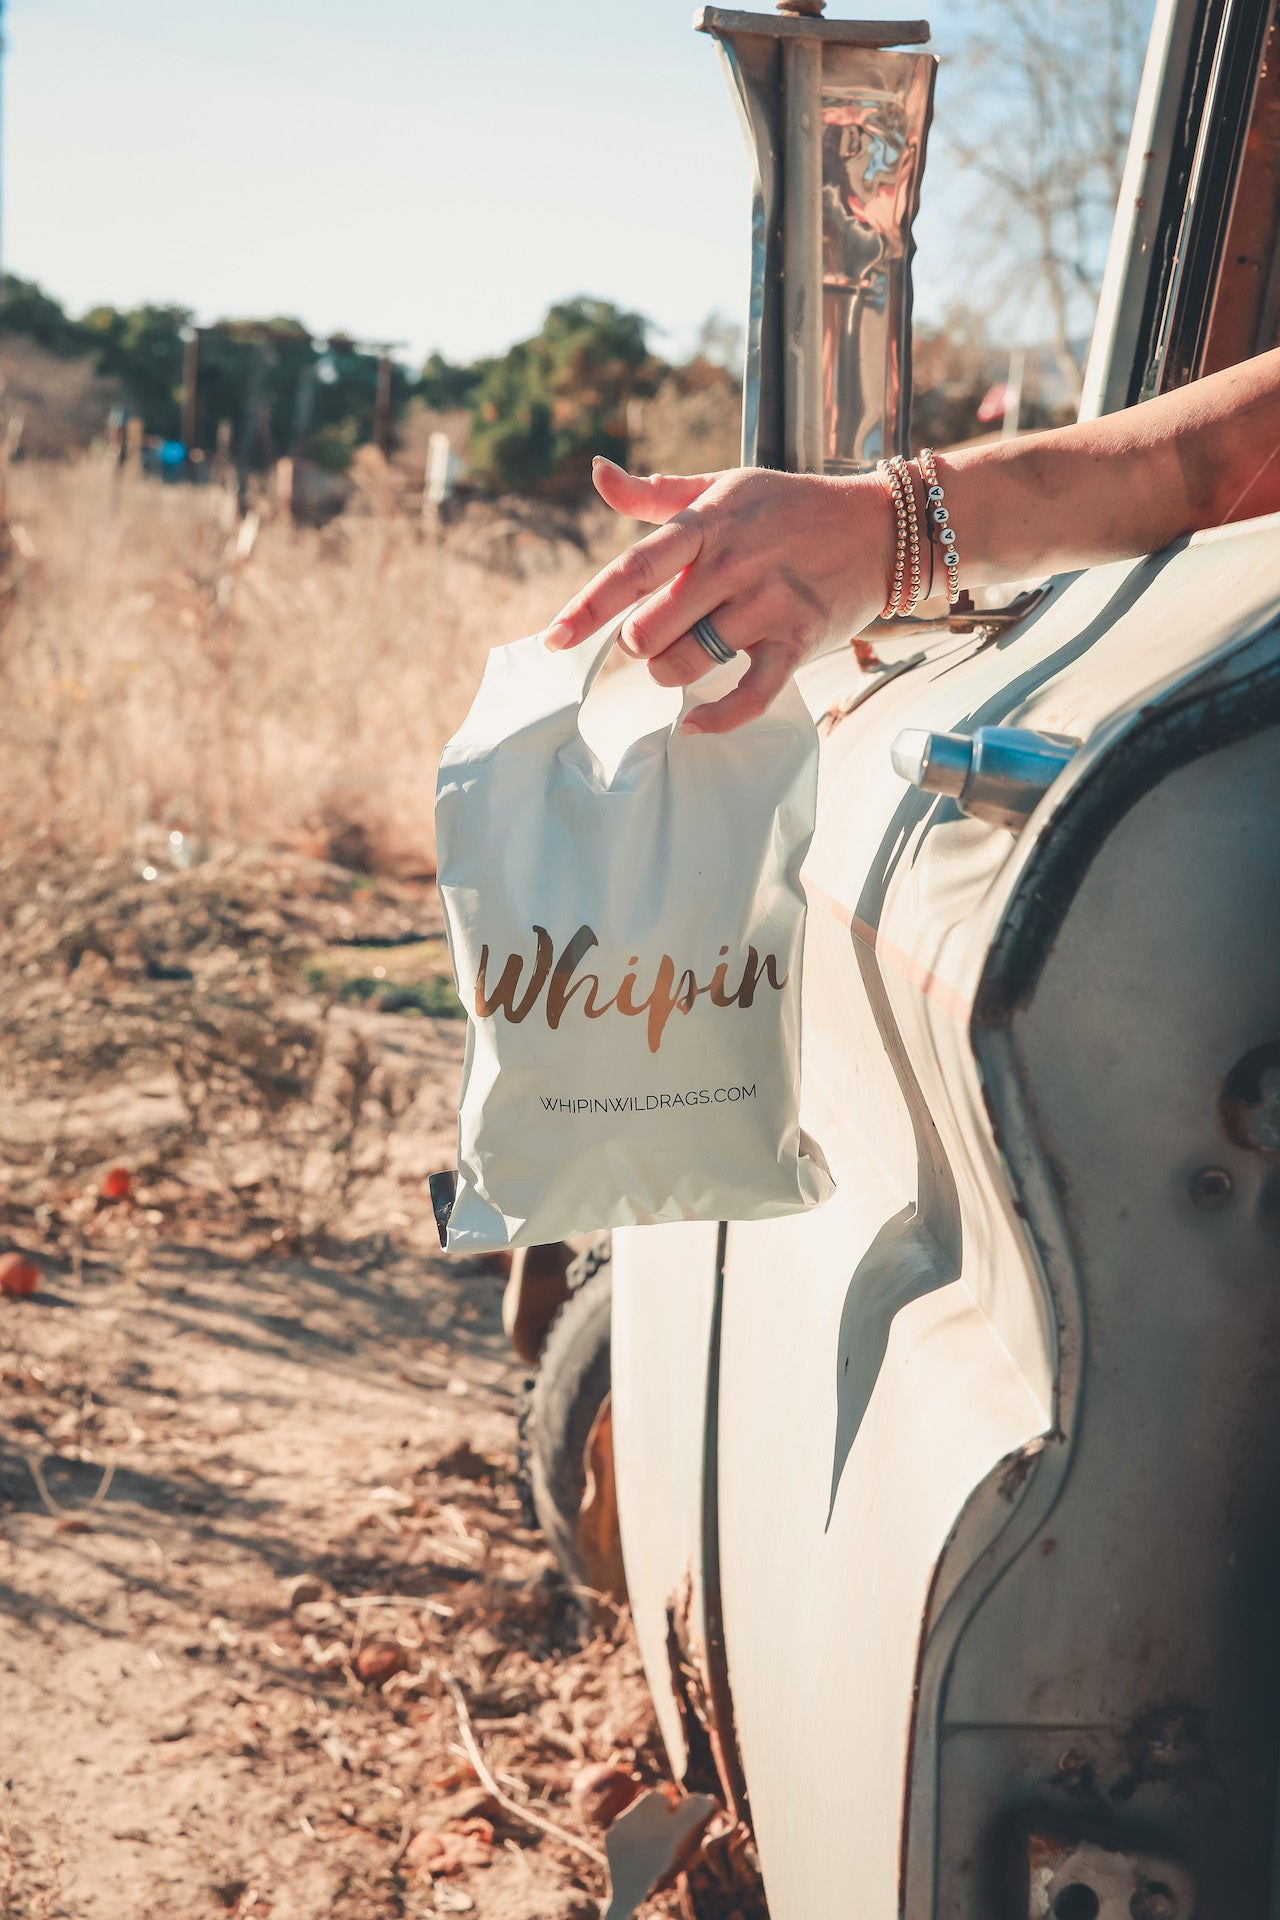 Shipping, Exchanges, Returns and Refunds Policy Whipin Wild Rags